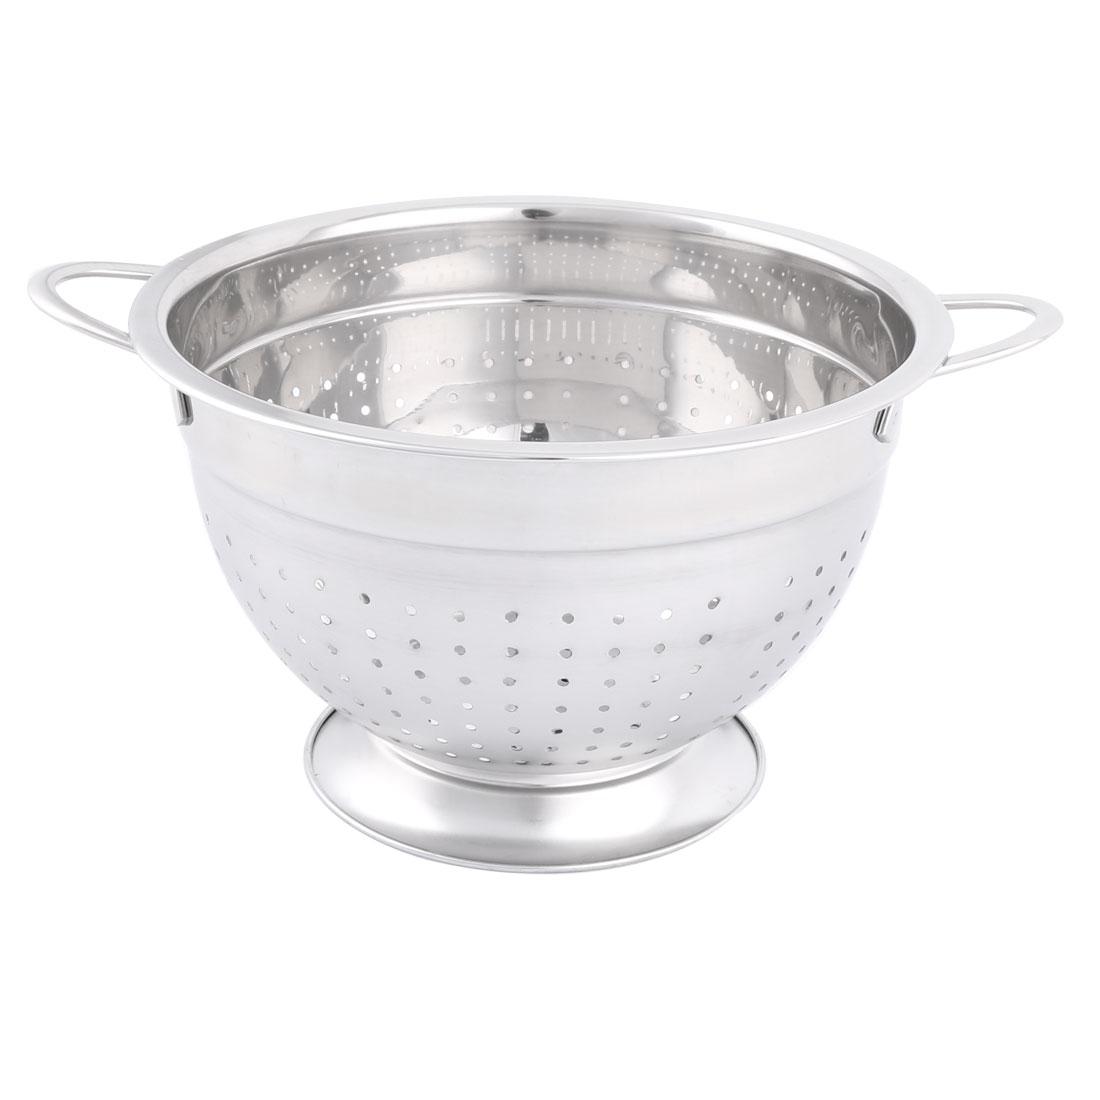 Household Stainless Steel Fruit Vegetable Nuts Drain Basket Silver Tone 22cm Dia